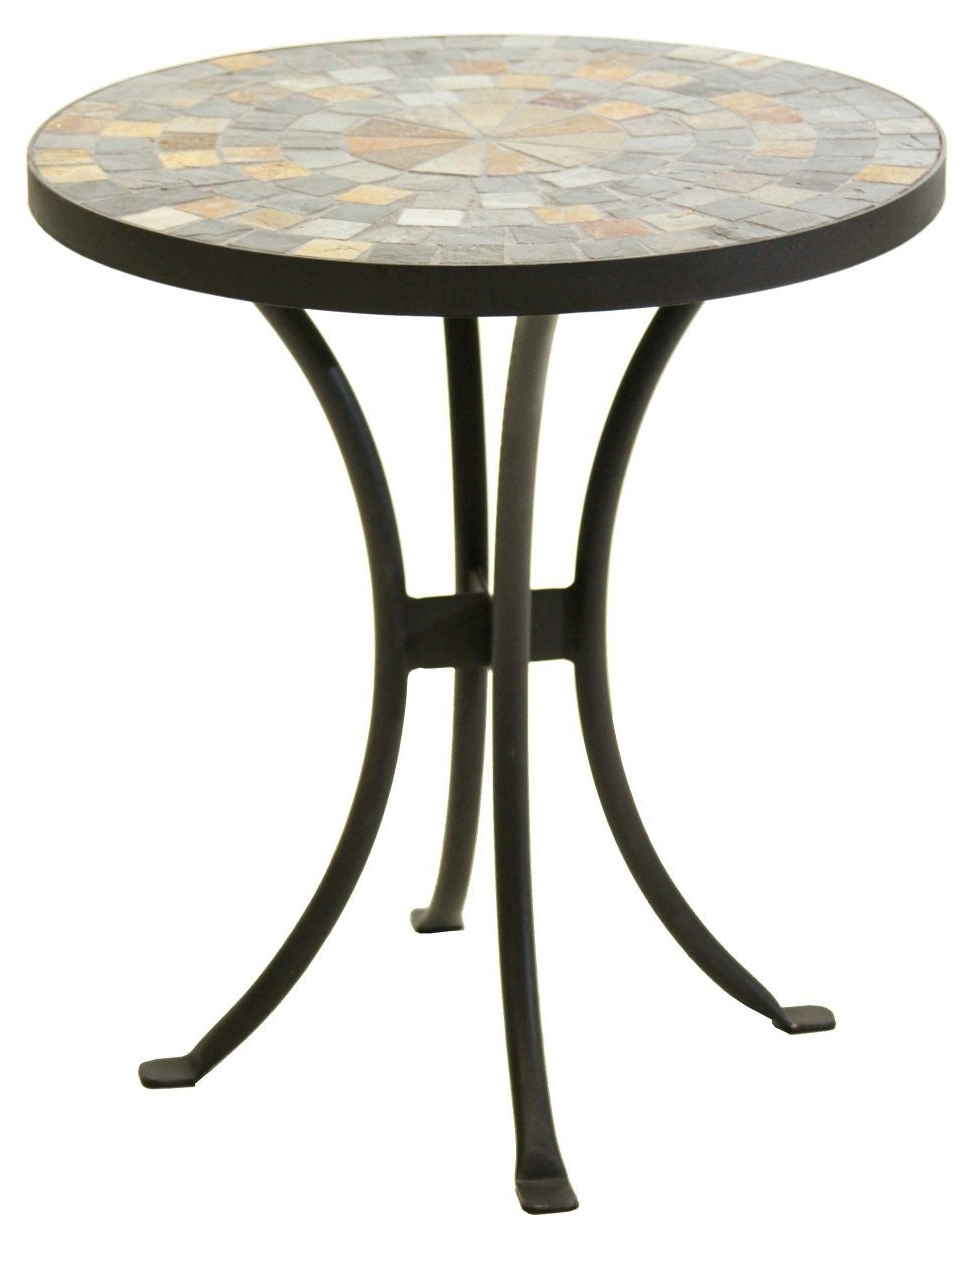 popular patio umbrellas with accent table recent for serene chairs uqcj outdoor small black furniture patioset umbrella gold runner rustic coffee drawers battery lamps legion wood